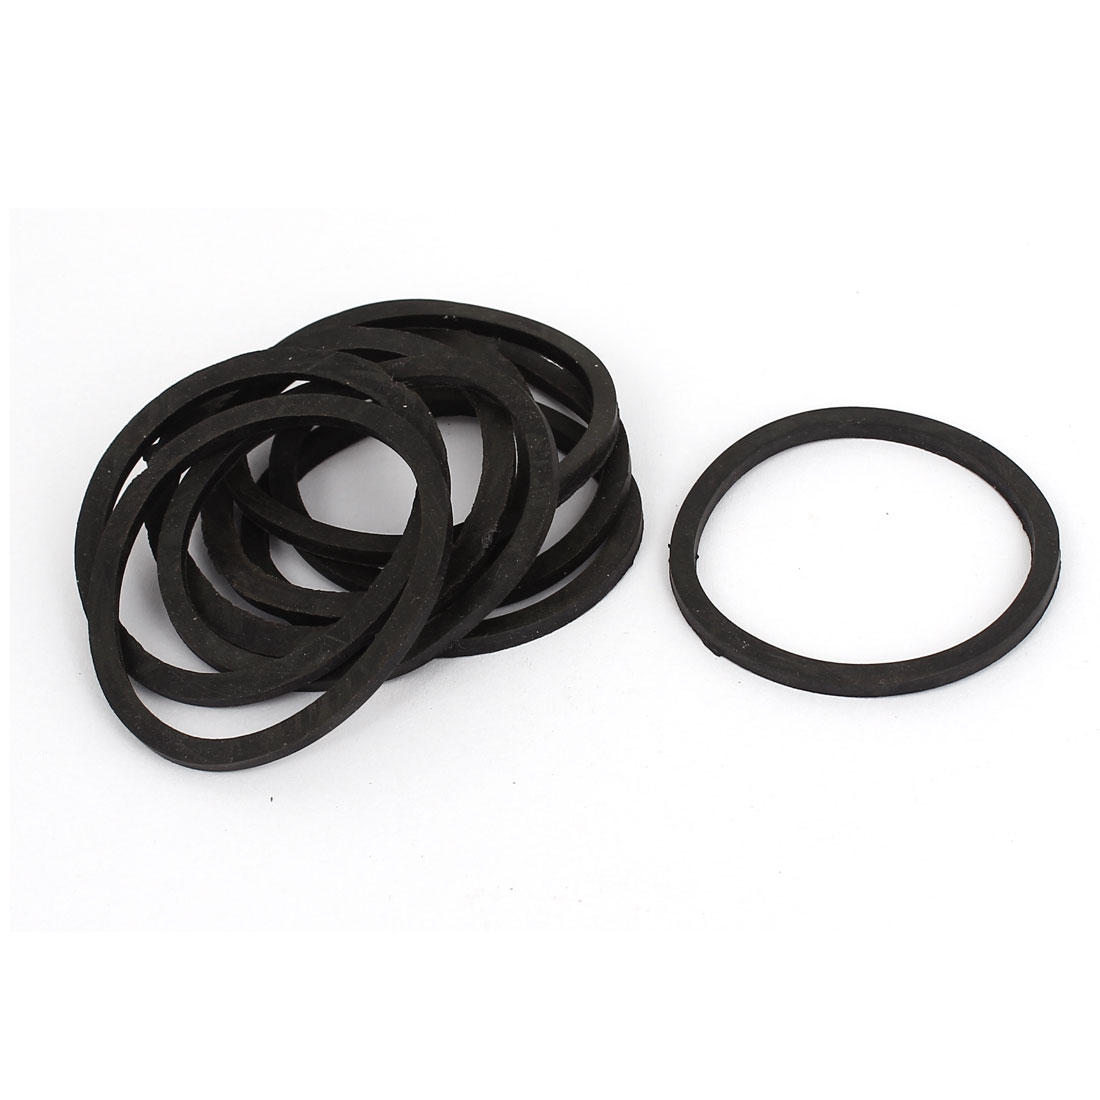 Water Pipe Tube Hose Connector Seal Ring Gasket Washer 45x40x2.5mm 9Pcs